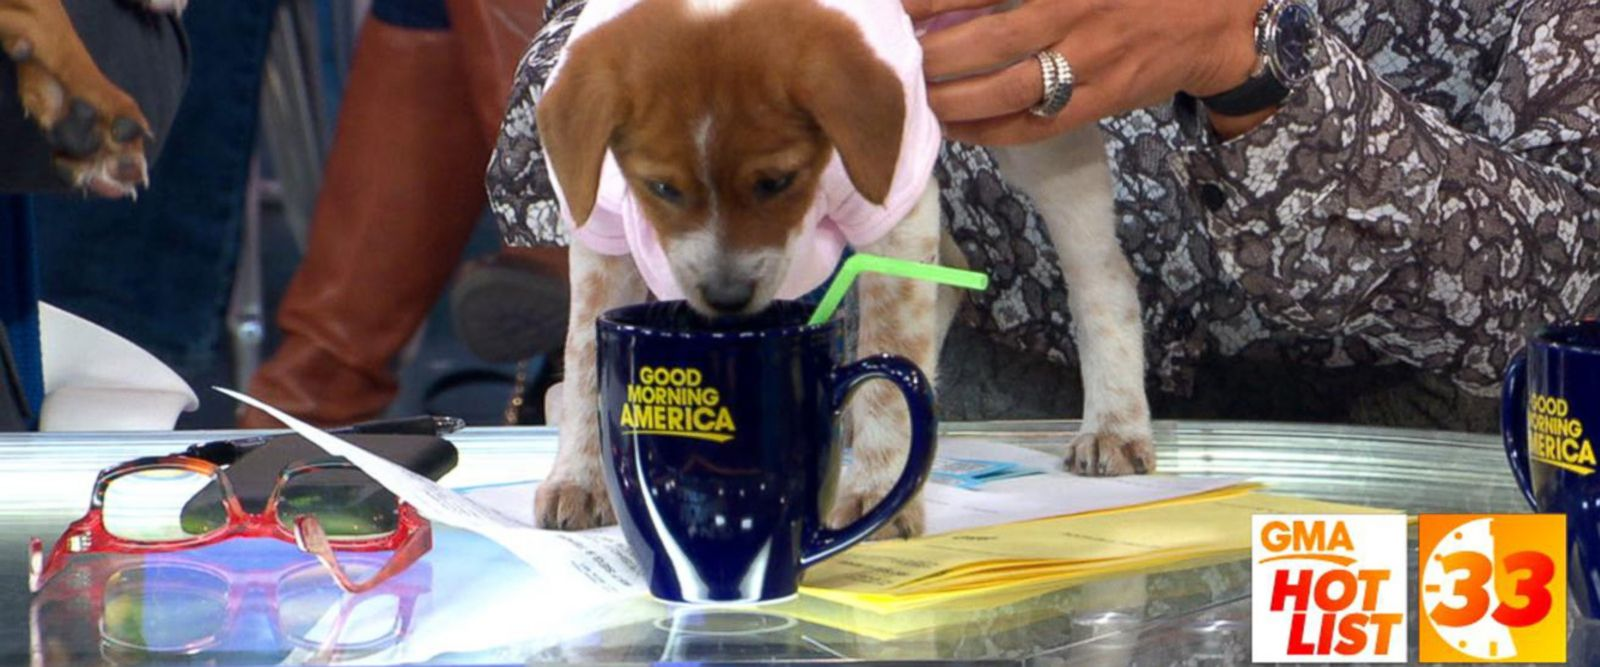 VIDEO: 'GMA' Hot List: The anchors celebrate National Puppy Day